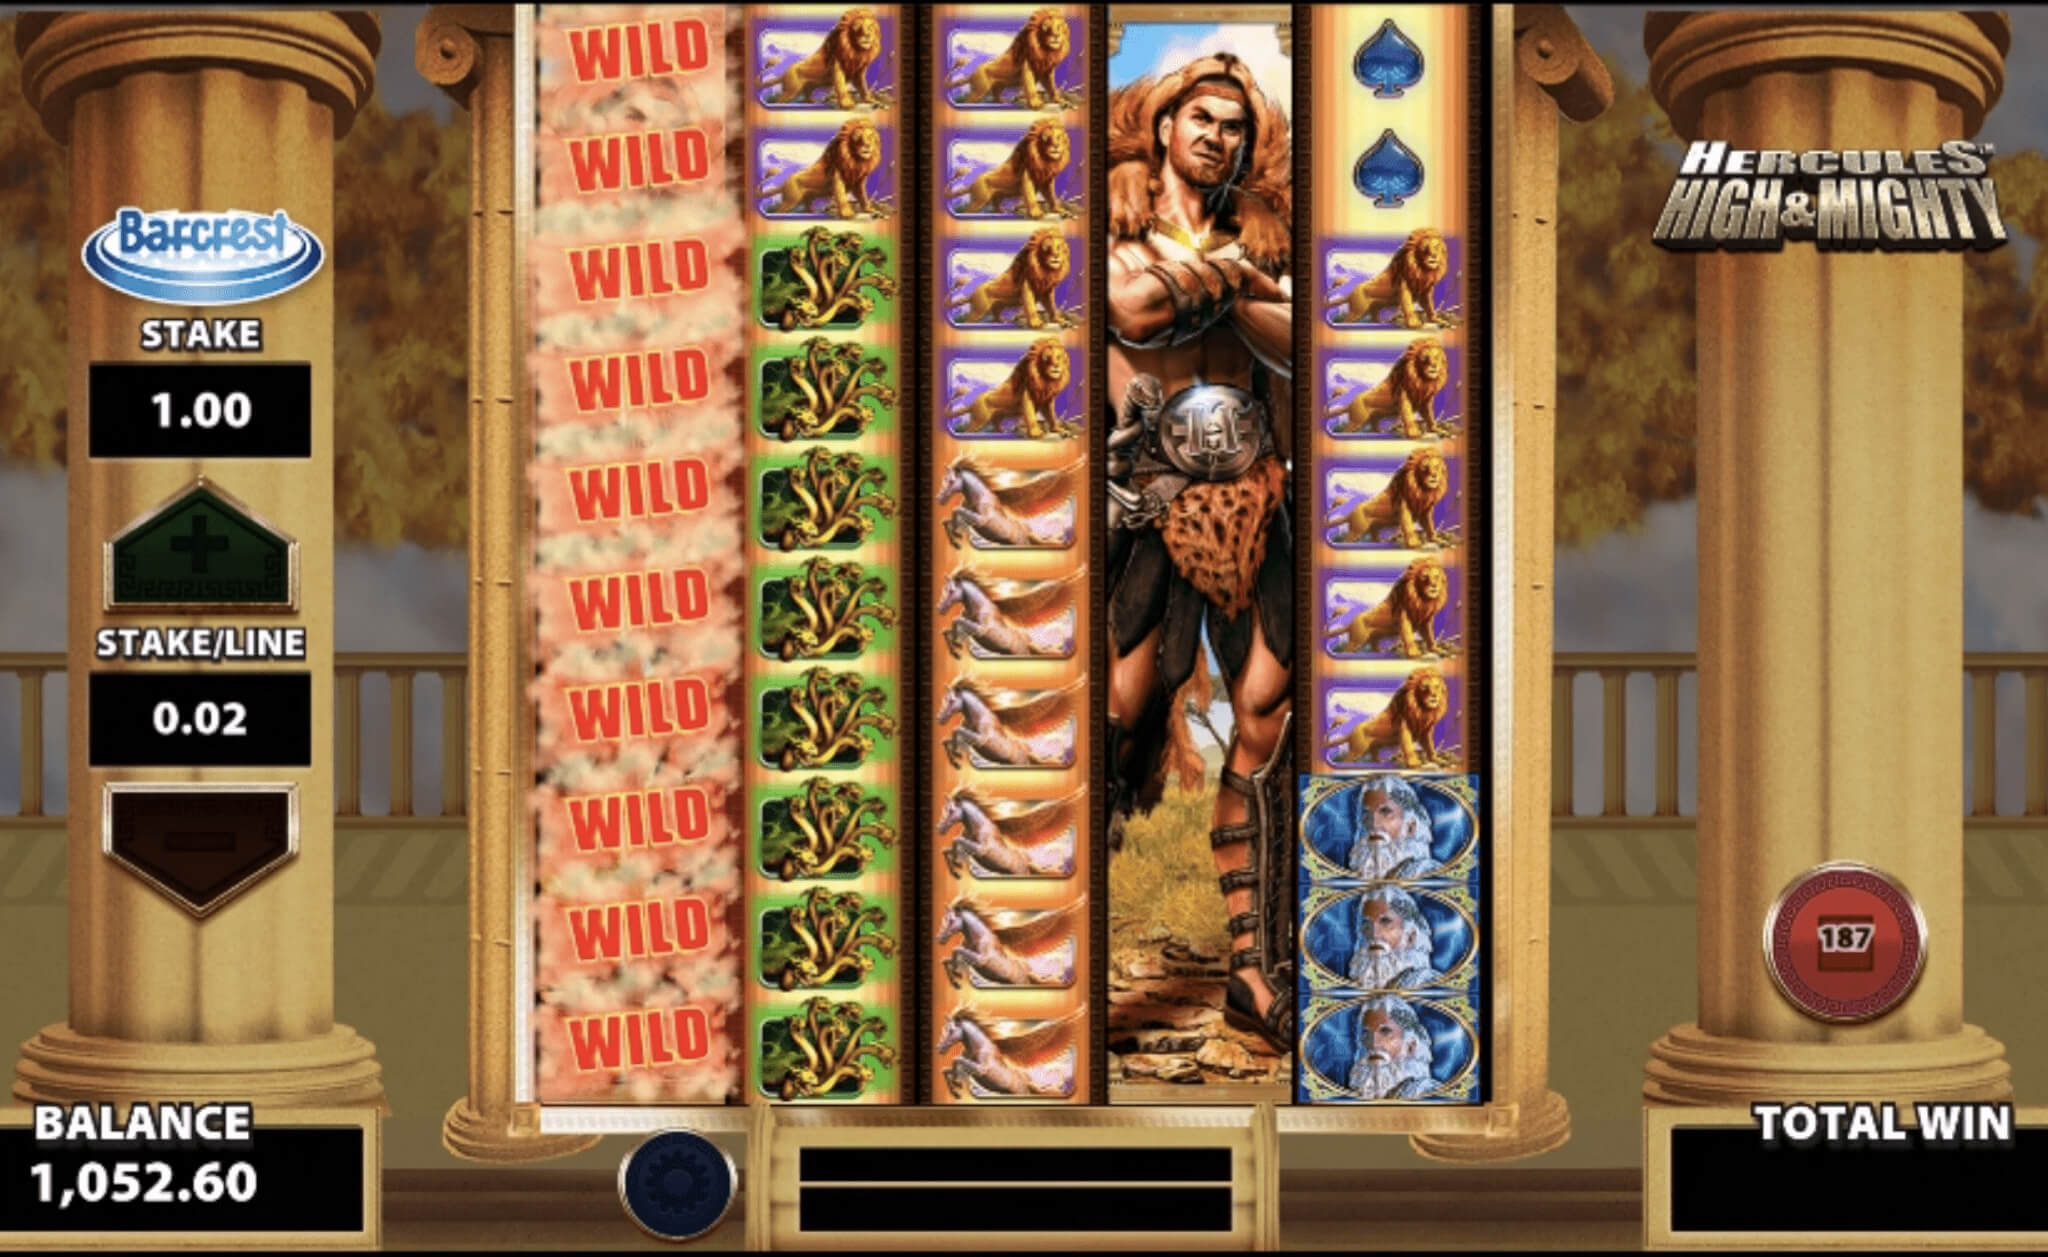 Hercules High & Mighty slot review